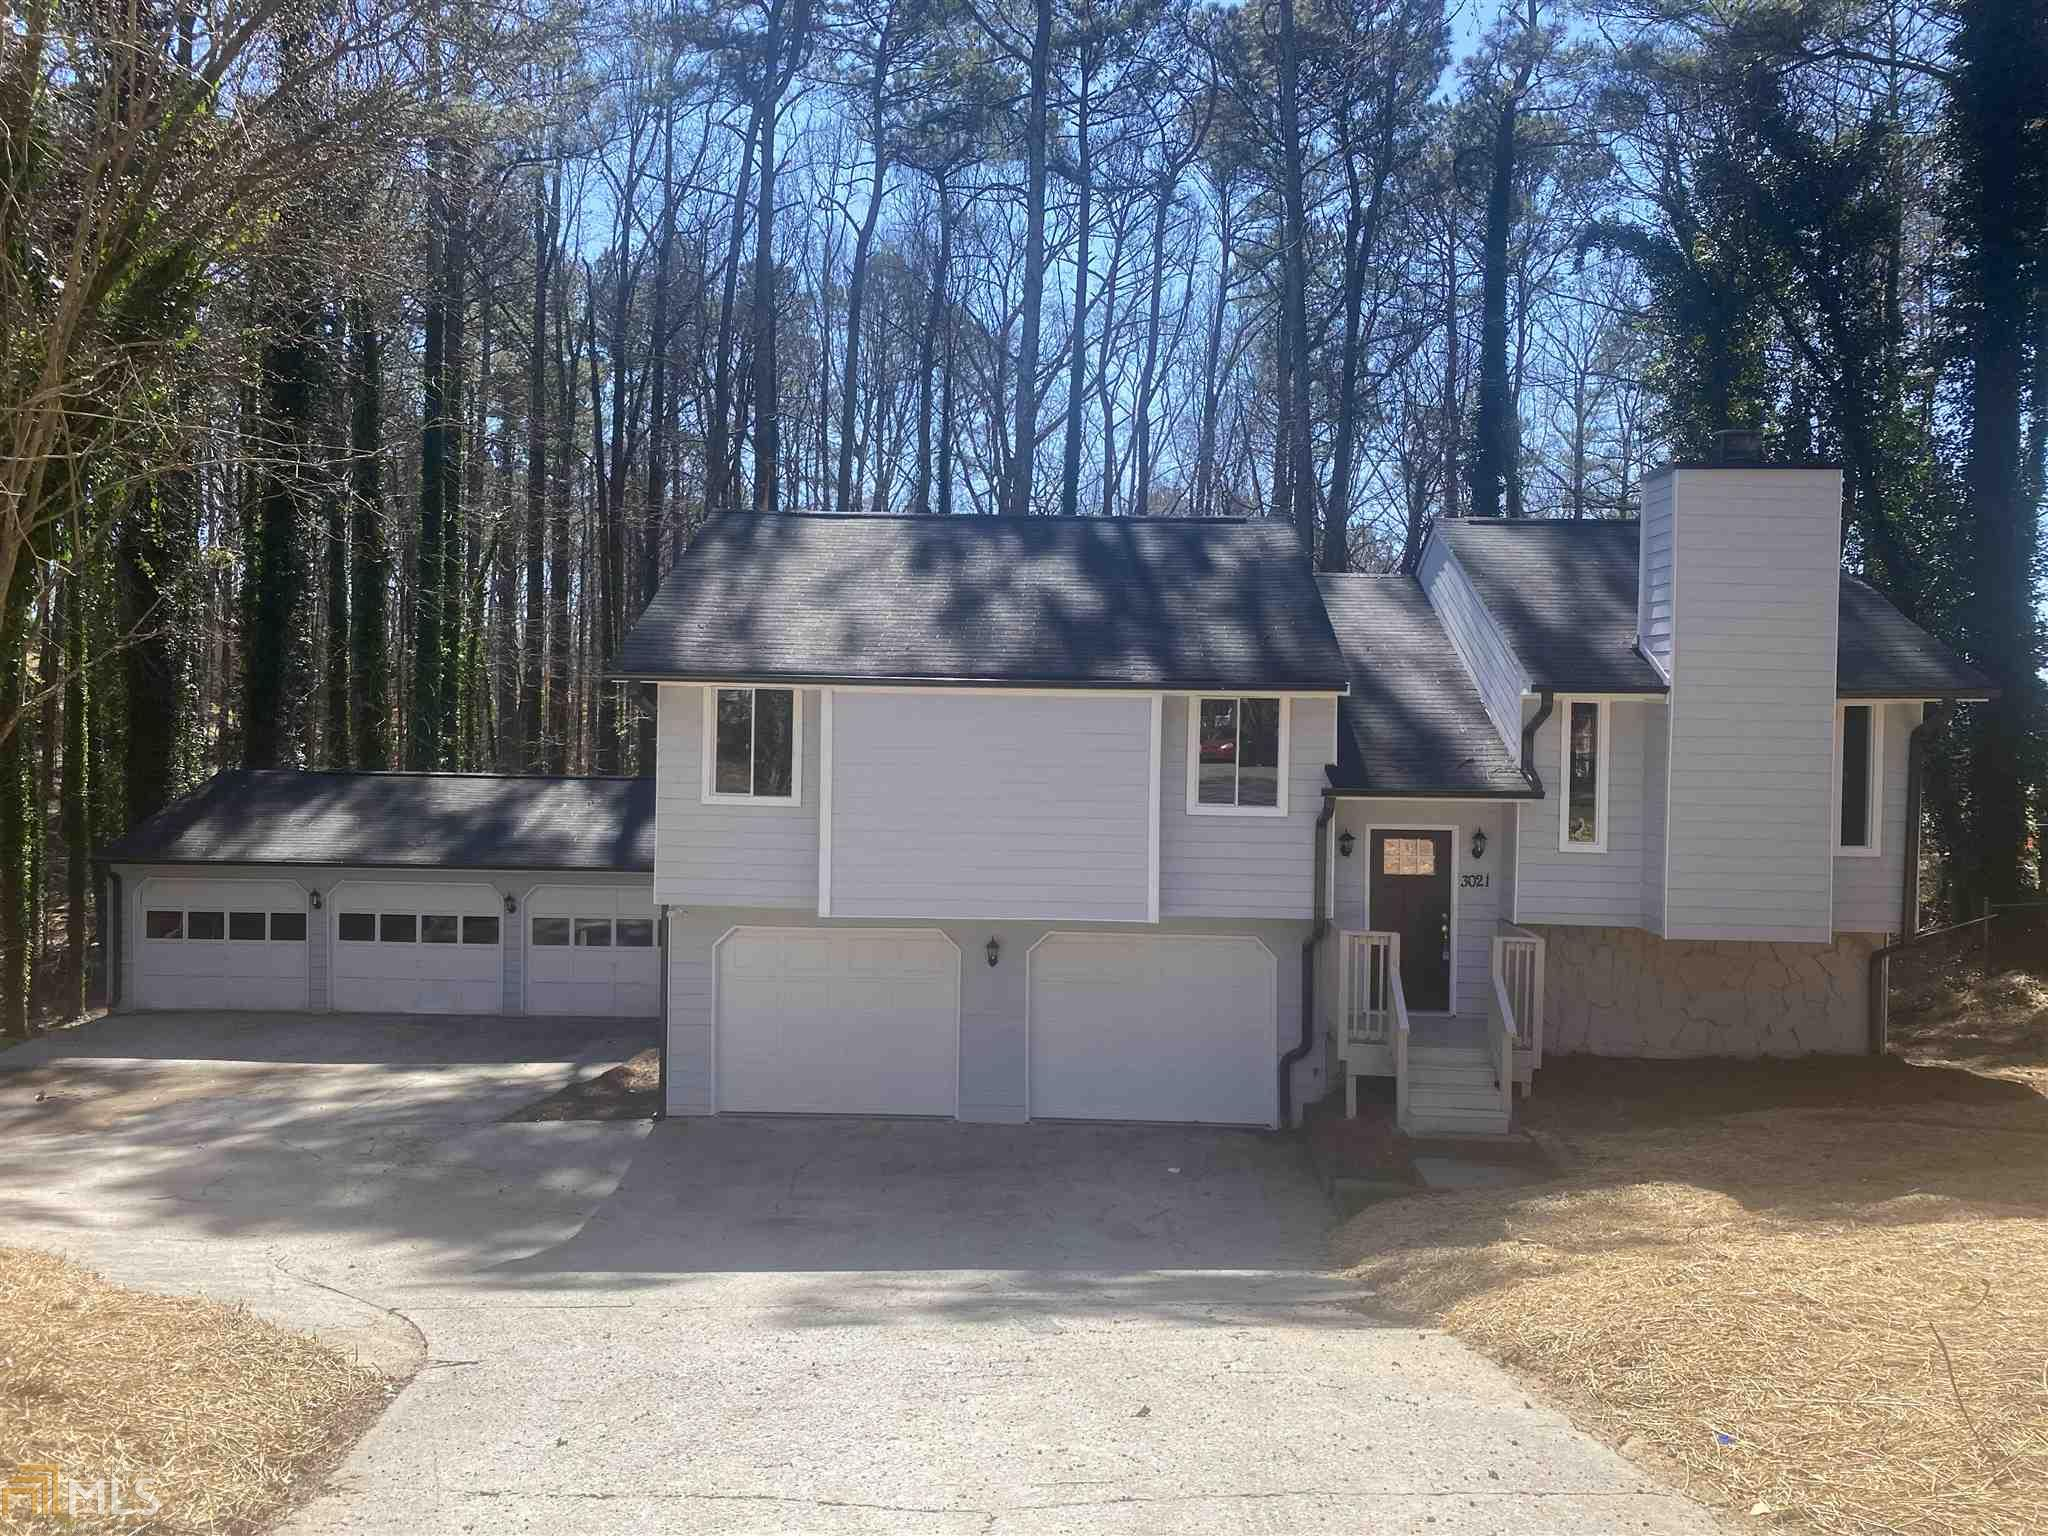 3021 Munson Ct, Snellville, Georgia 30039, 4 Bedrooms Bedrooms, ,3 BathroomsBathrooms,Single Family,For Sale,3021 Munson Ct,2,8938602